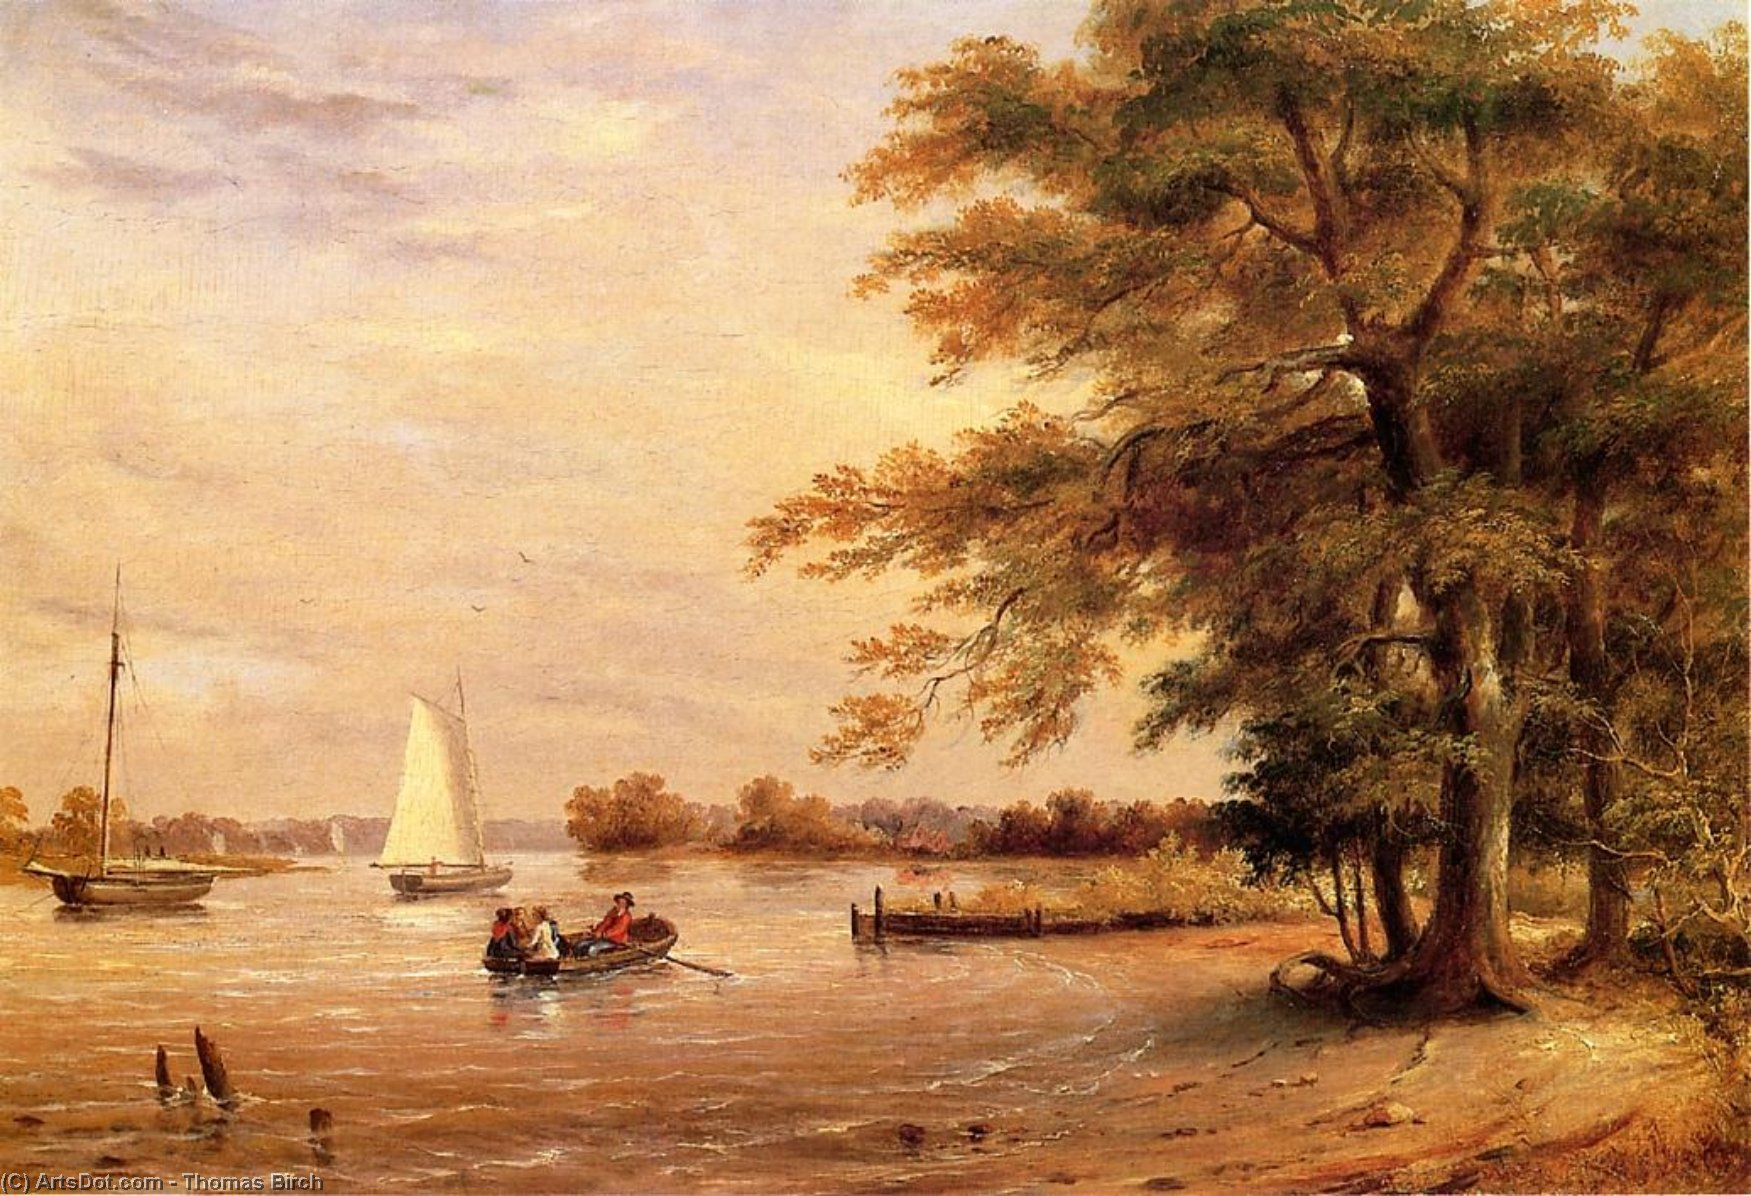 On the Shrewsbury River, Redbank, New Jersey, Oil On Panel by Thomas Birch (1779-1851, United Kingdom)